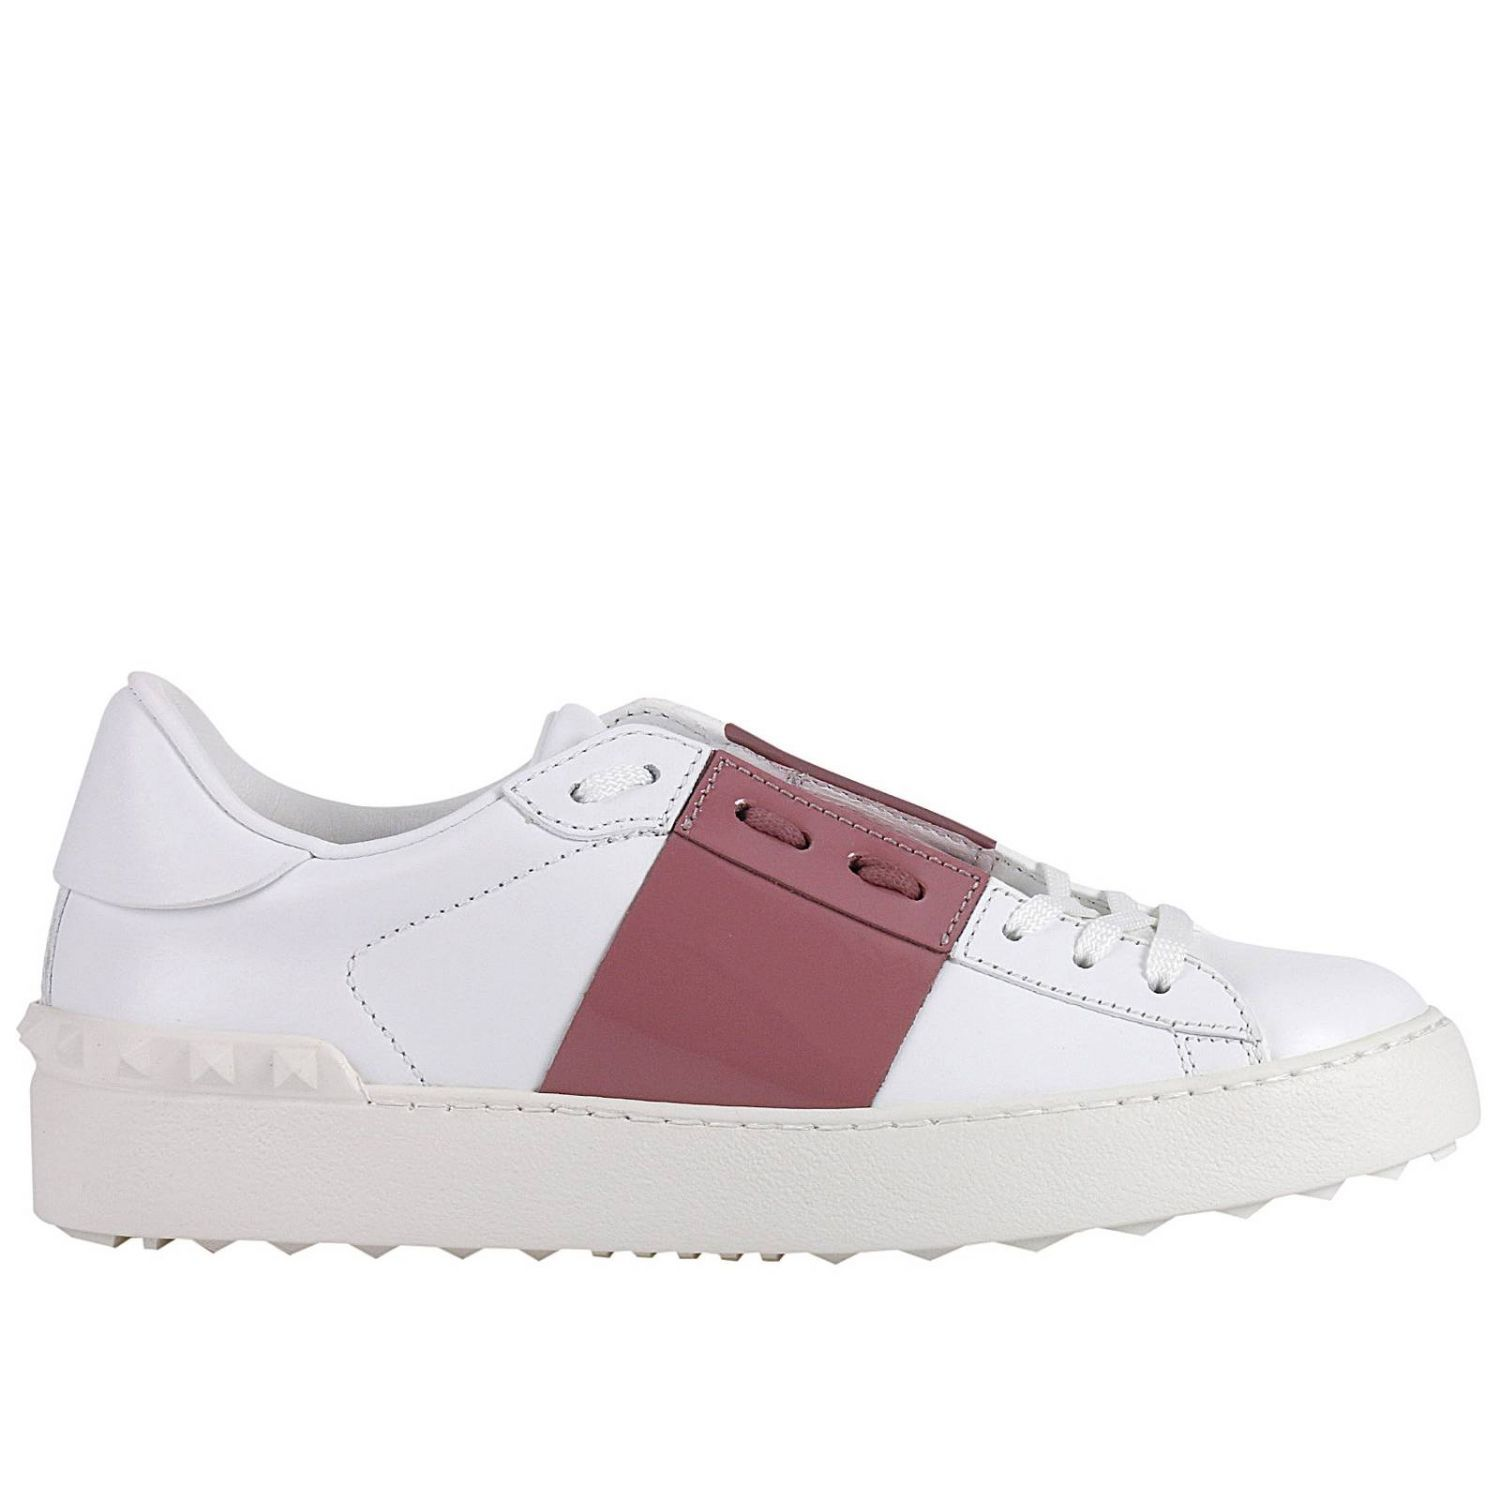 Sneakers Rockstud Open Sneakers With Tone On Tone Studs And Band In Paint